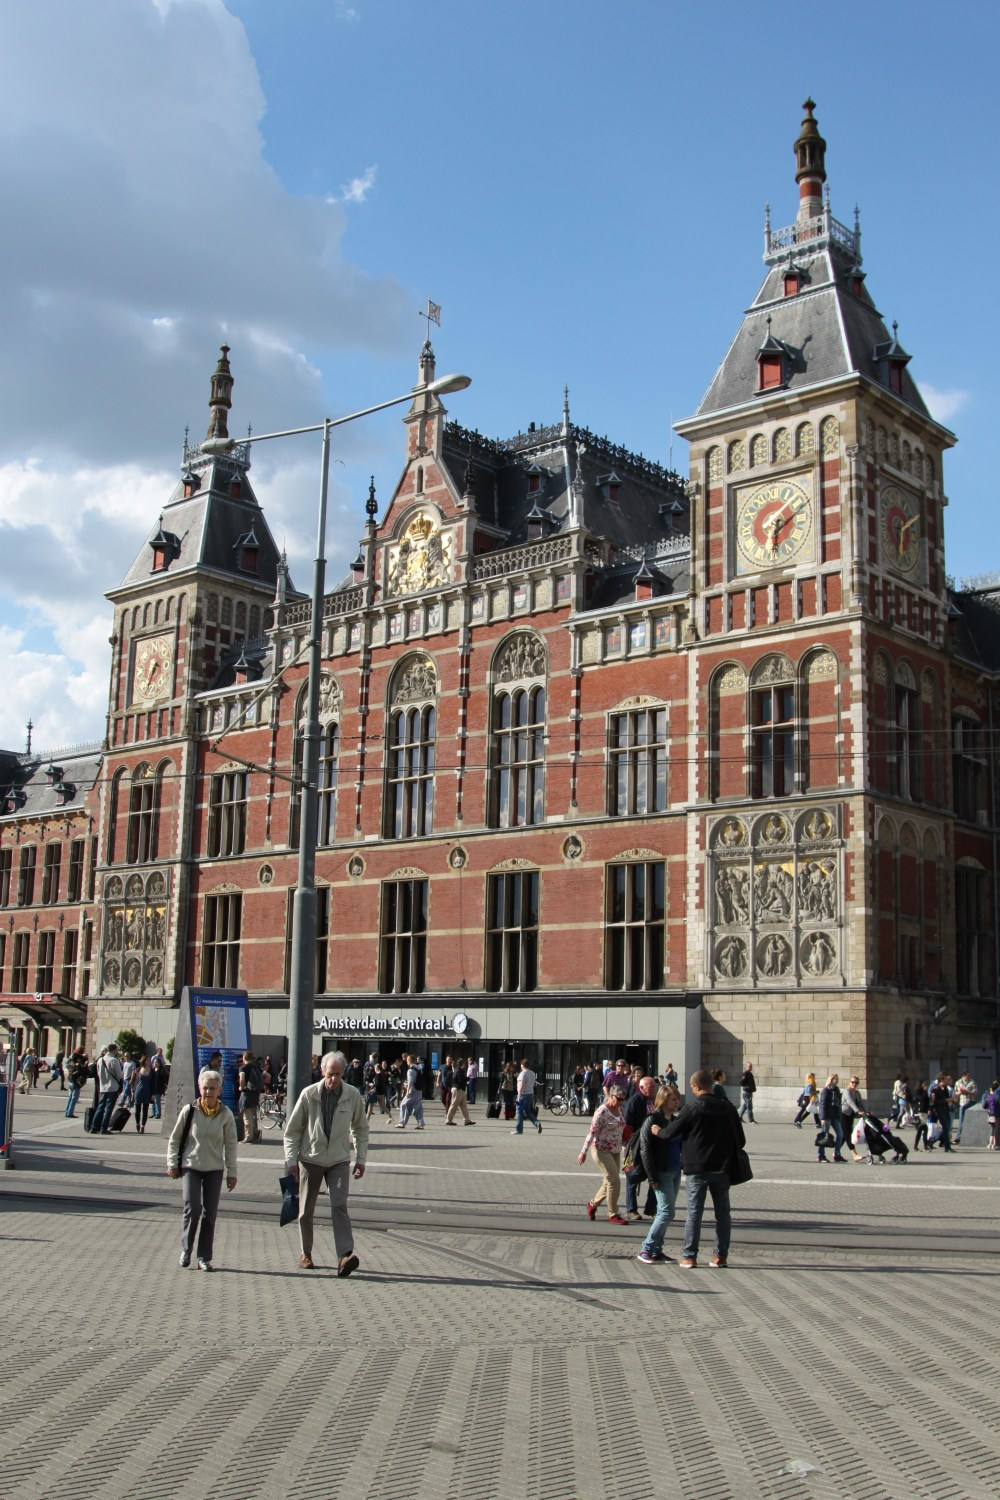 Amsterdam Centraal/Central Station